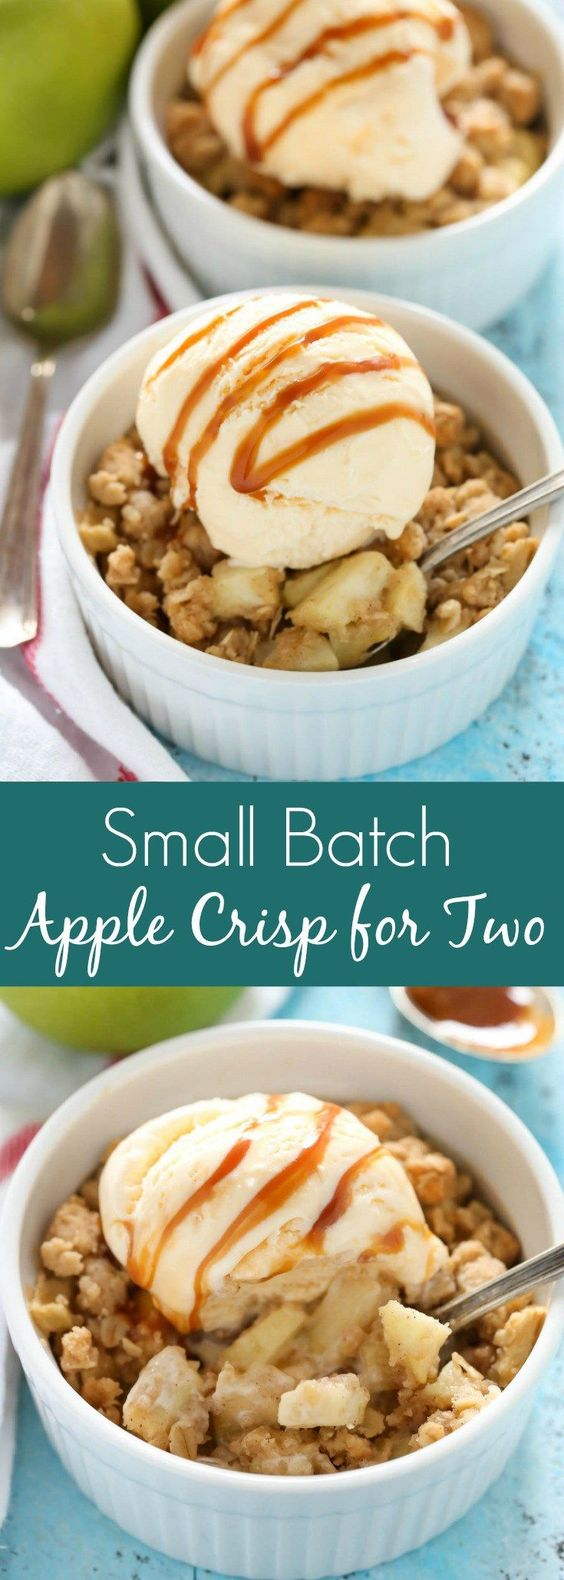 This Apple Crisp for Two Recipe via Live Well, Bake Often is easy to make and a perfect small batch dessert for Valentine's Day Dinner!